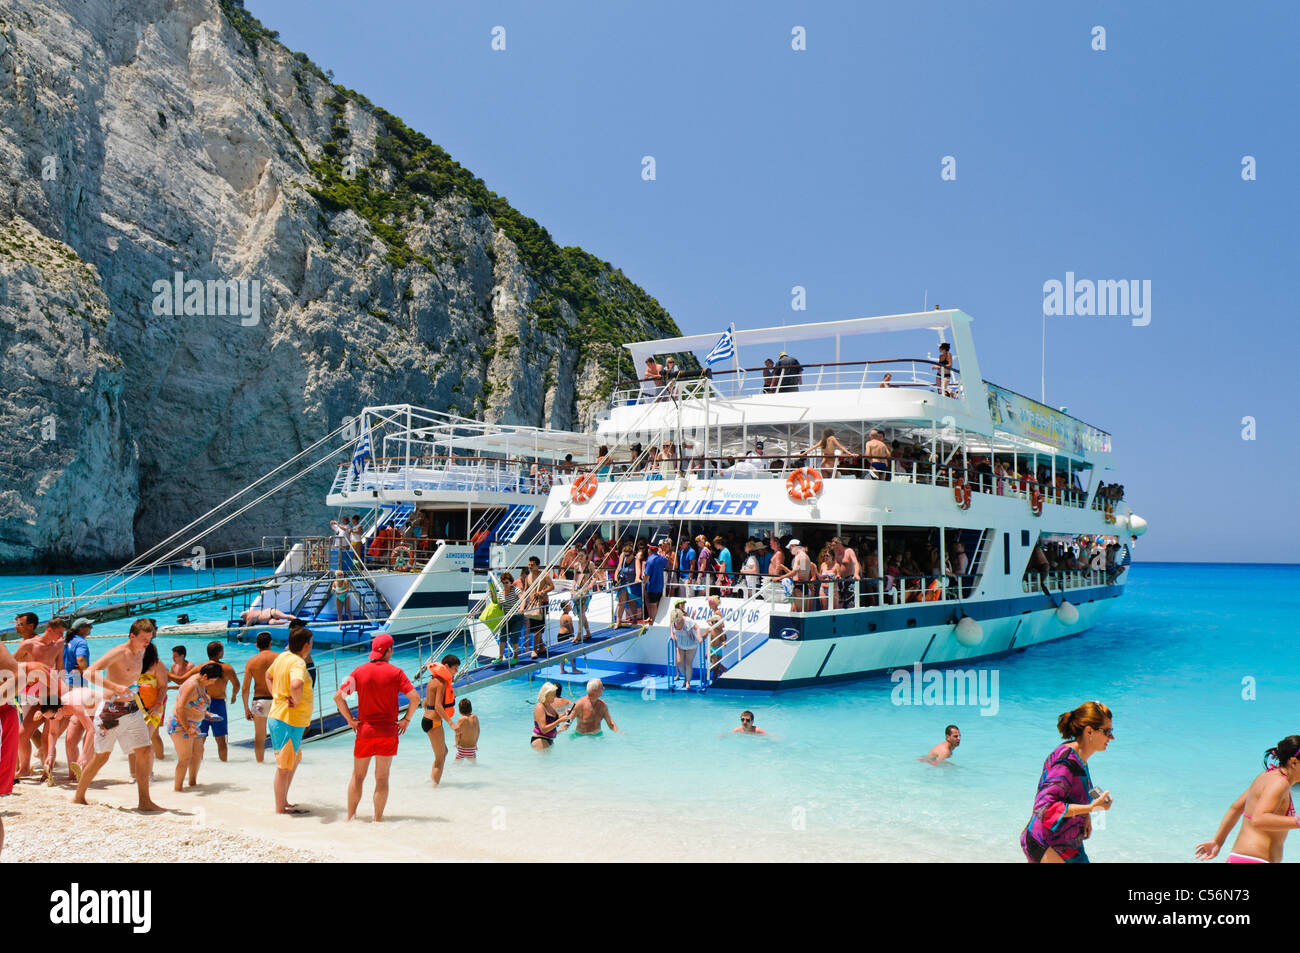 Tour boats anchored at a beach with very blue water - Stock Image